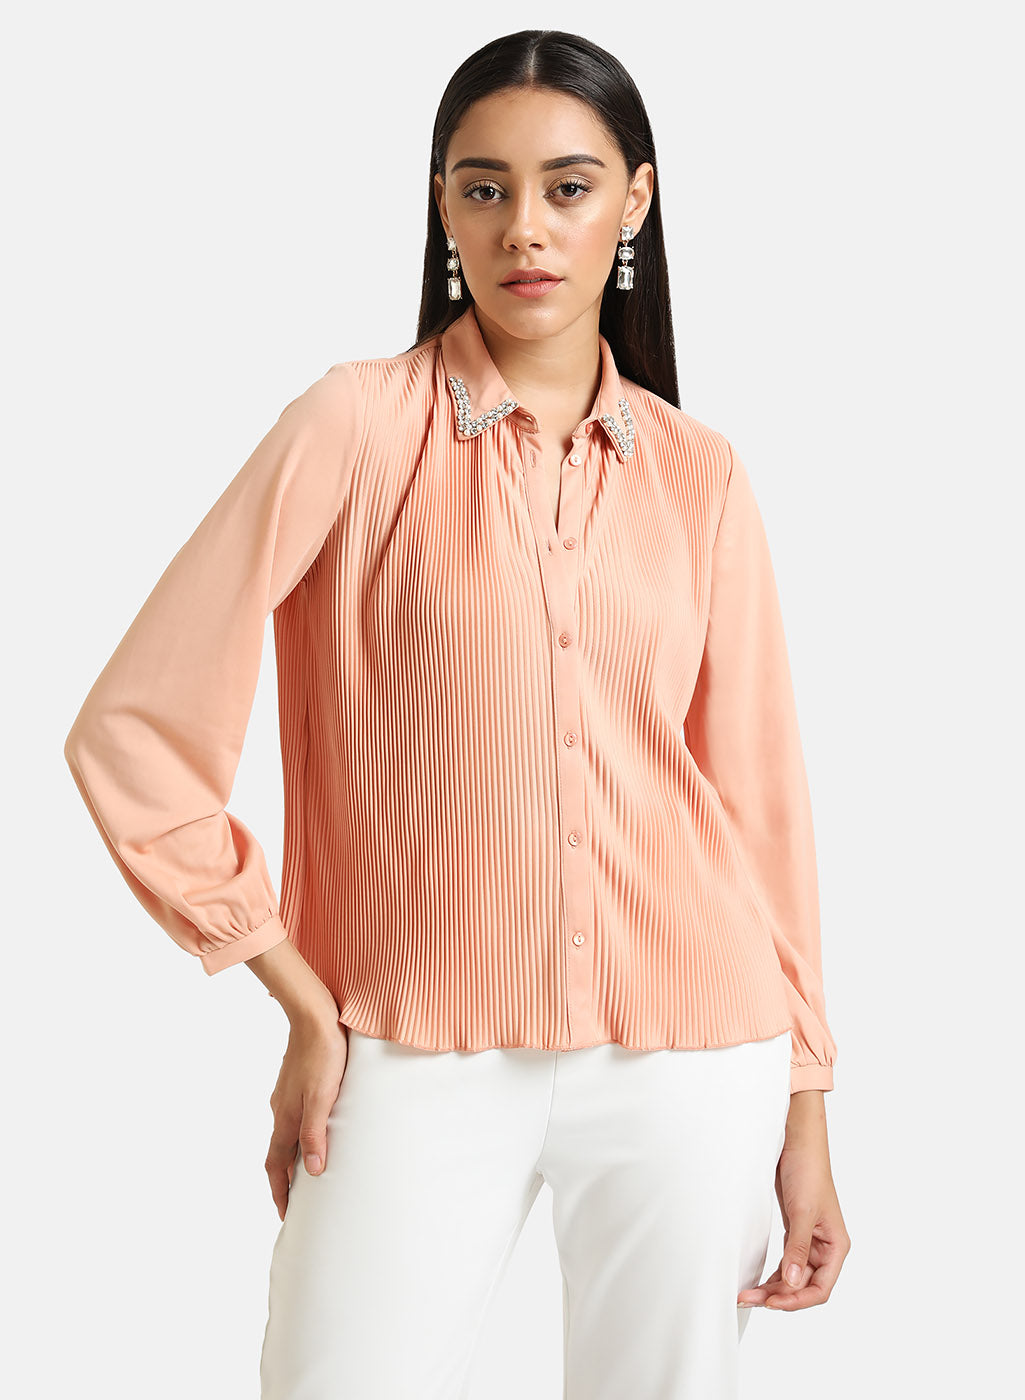 Pleated Shirt With Embellished Collar Tip